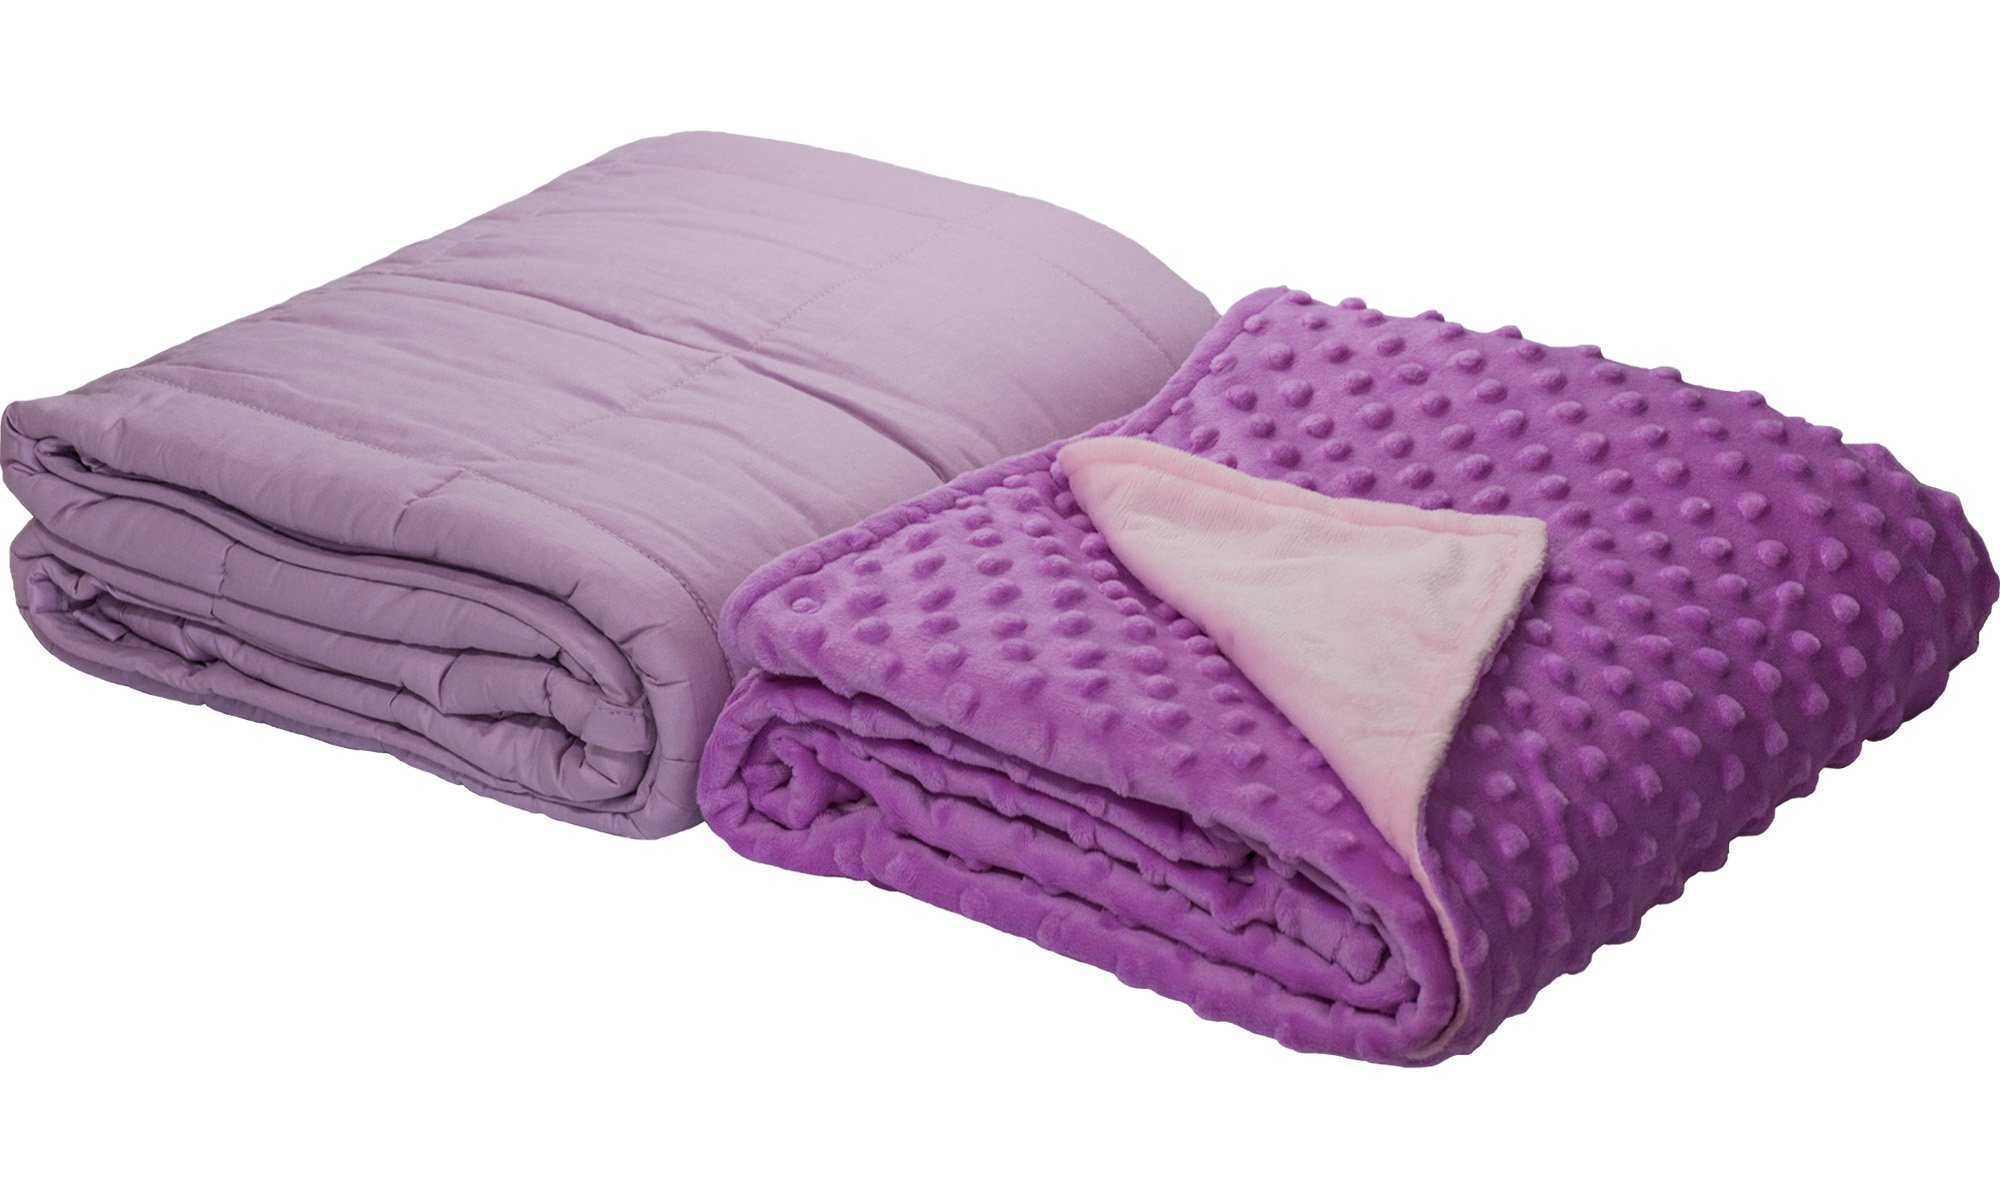 5lb Weighted Blanket with Dot Minky Cover for Kids 40-60lb Individual.Help Children with Sleep Issues Anxiety Stress Insomnia (Inner Light Violet/Cover Violet & Pink, 36''x48'' 5 lbs) by Loved Blanket (Image #4)